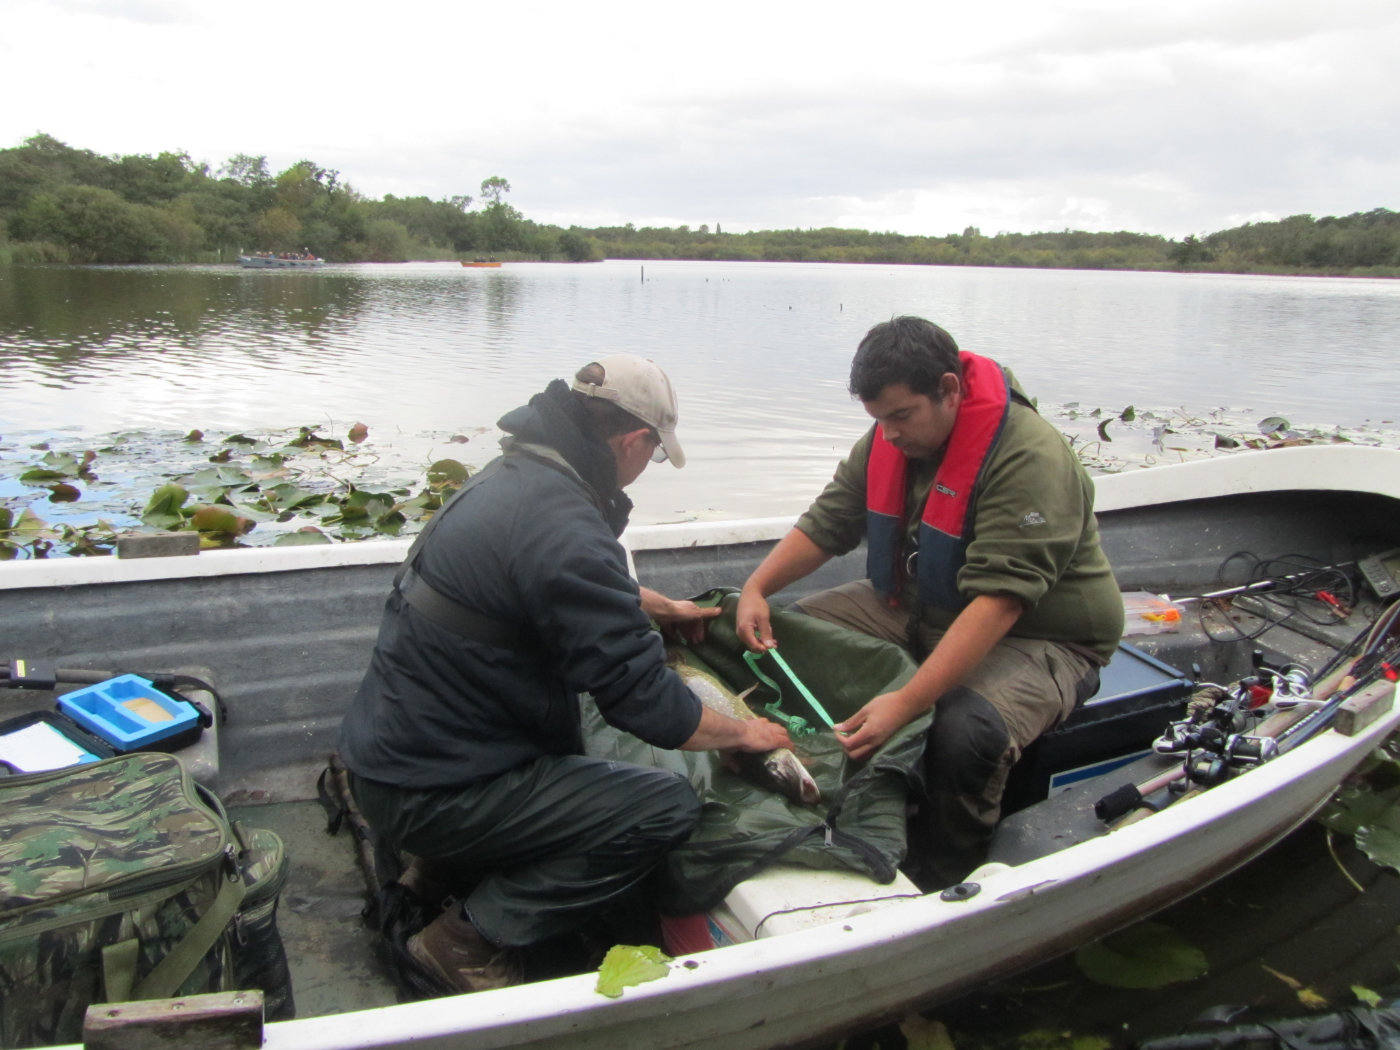 conservationists measuring a pike inside a boat on the water